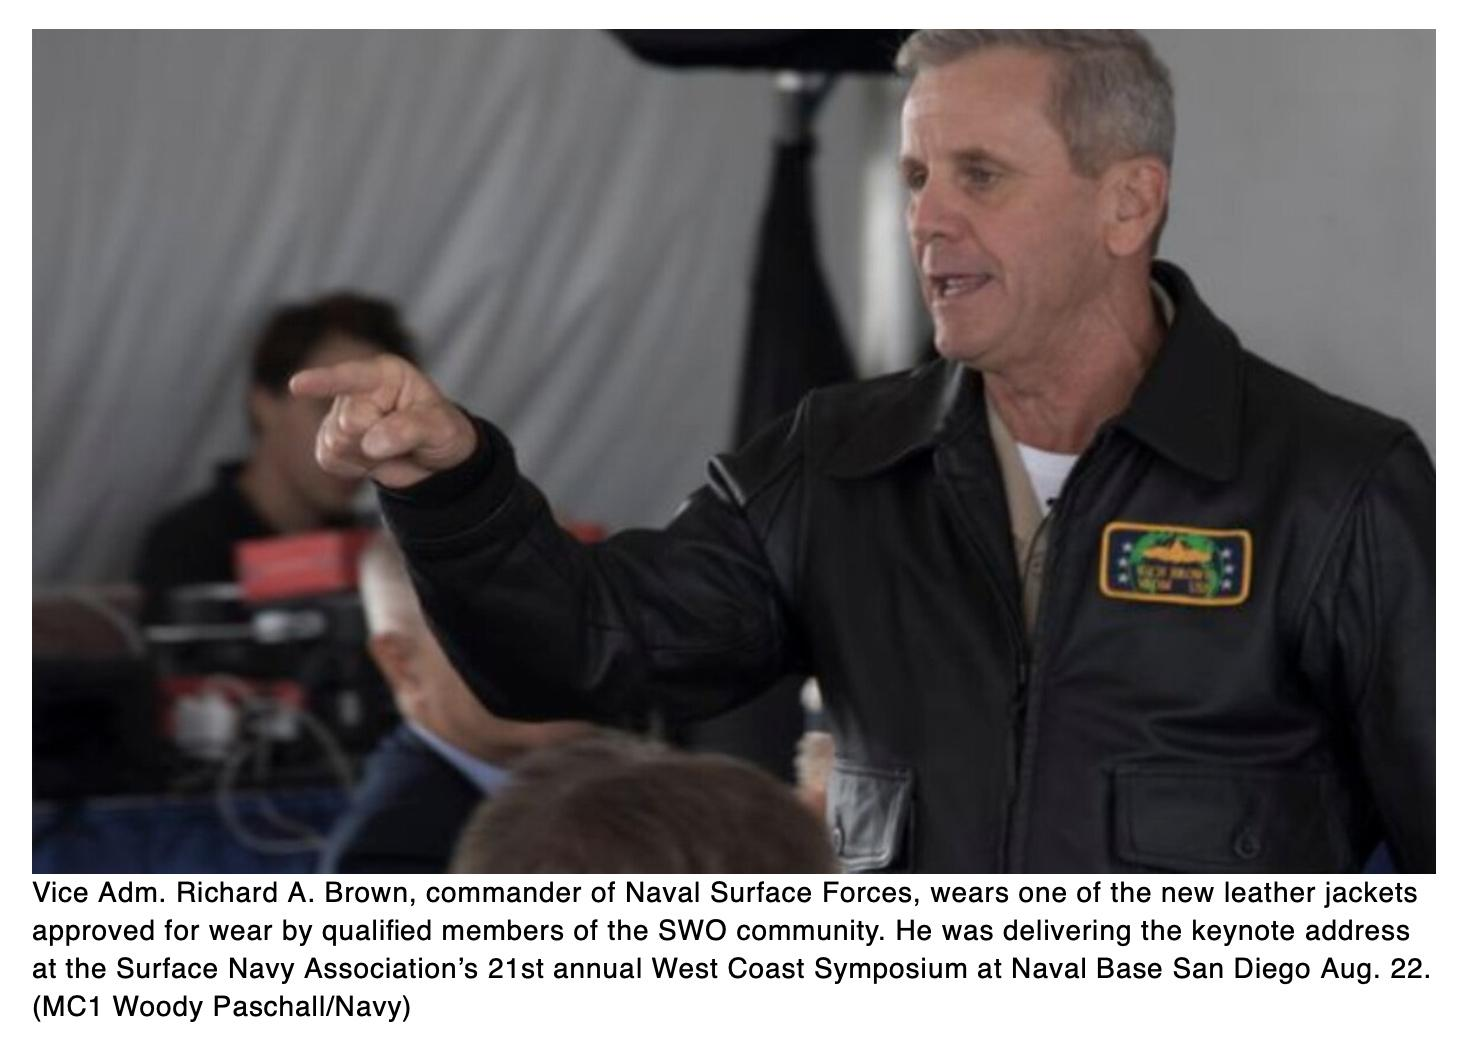 Surface warfare officers: Order your leather jackets now!